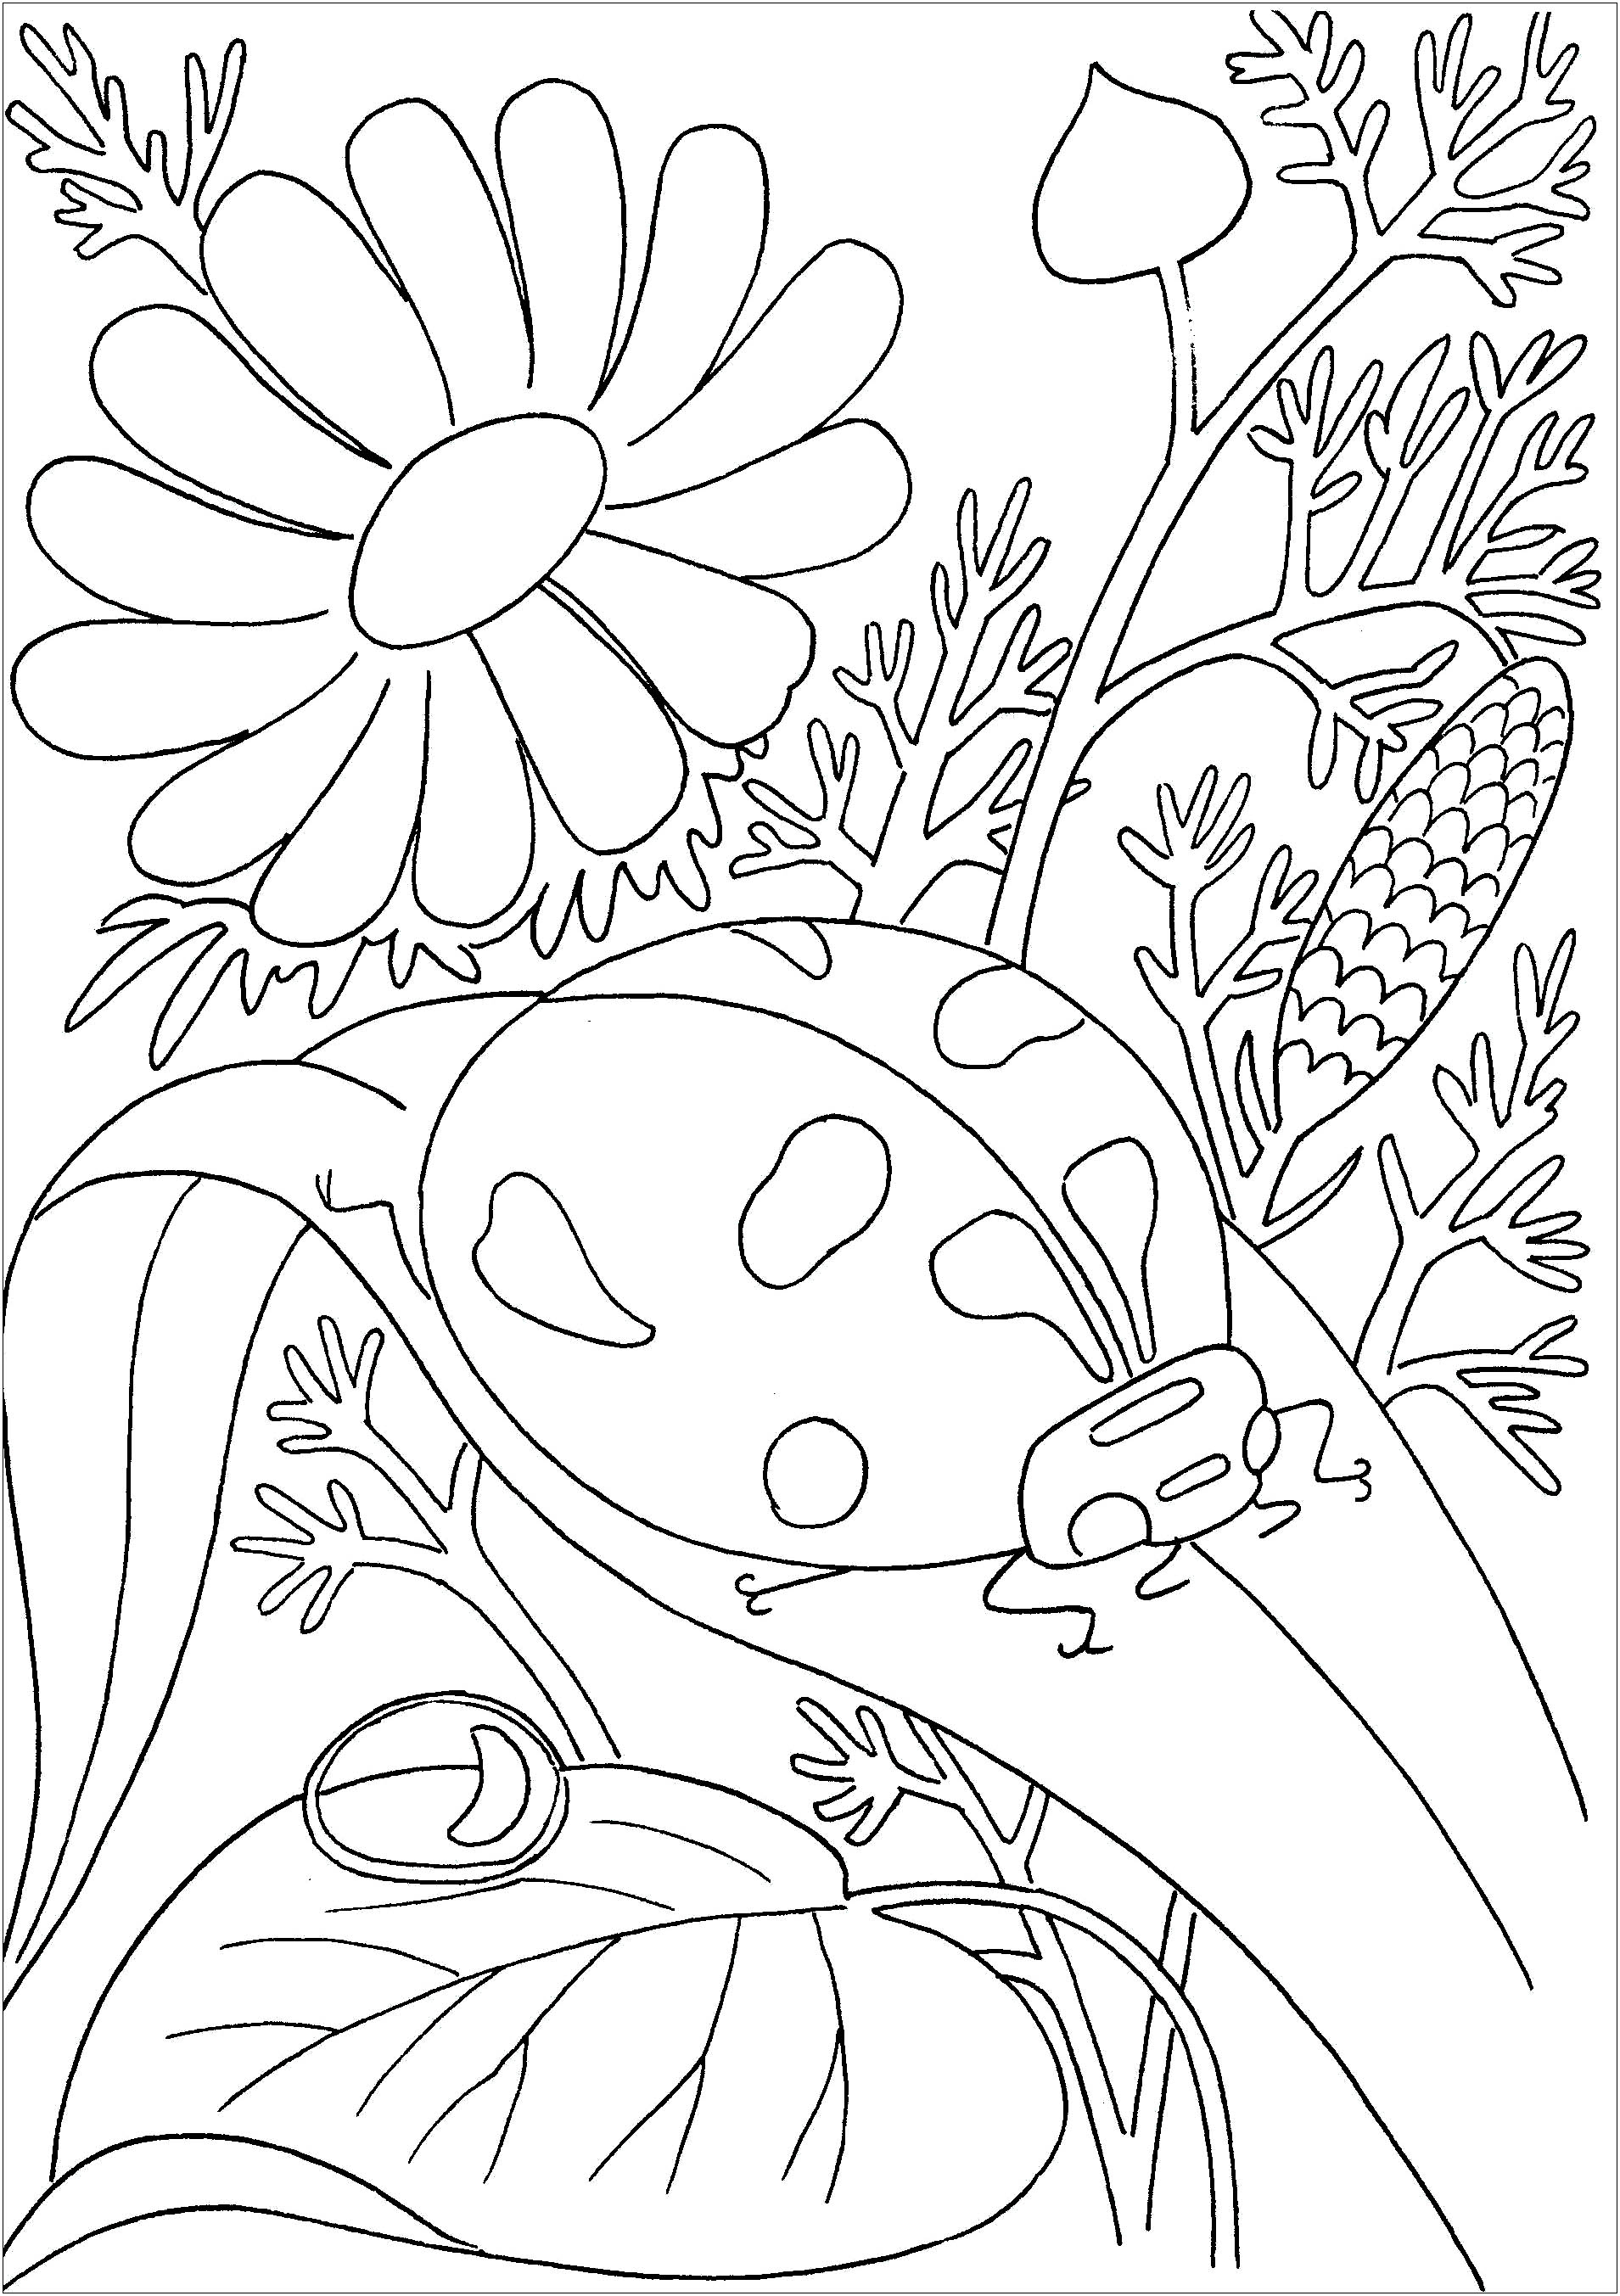 bug coloring pages free printable bug coloring pages for kids pages coloring bug